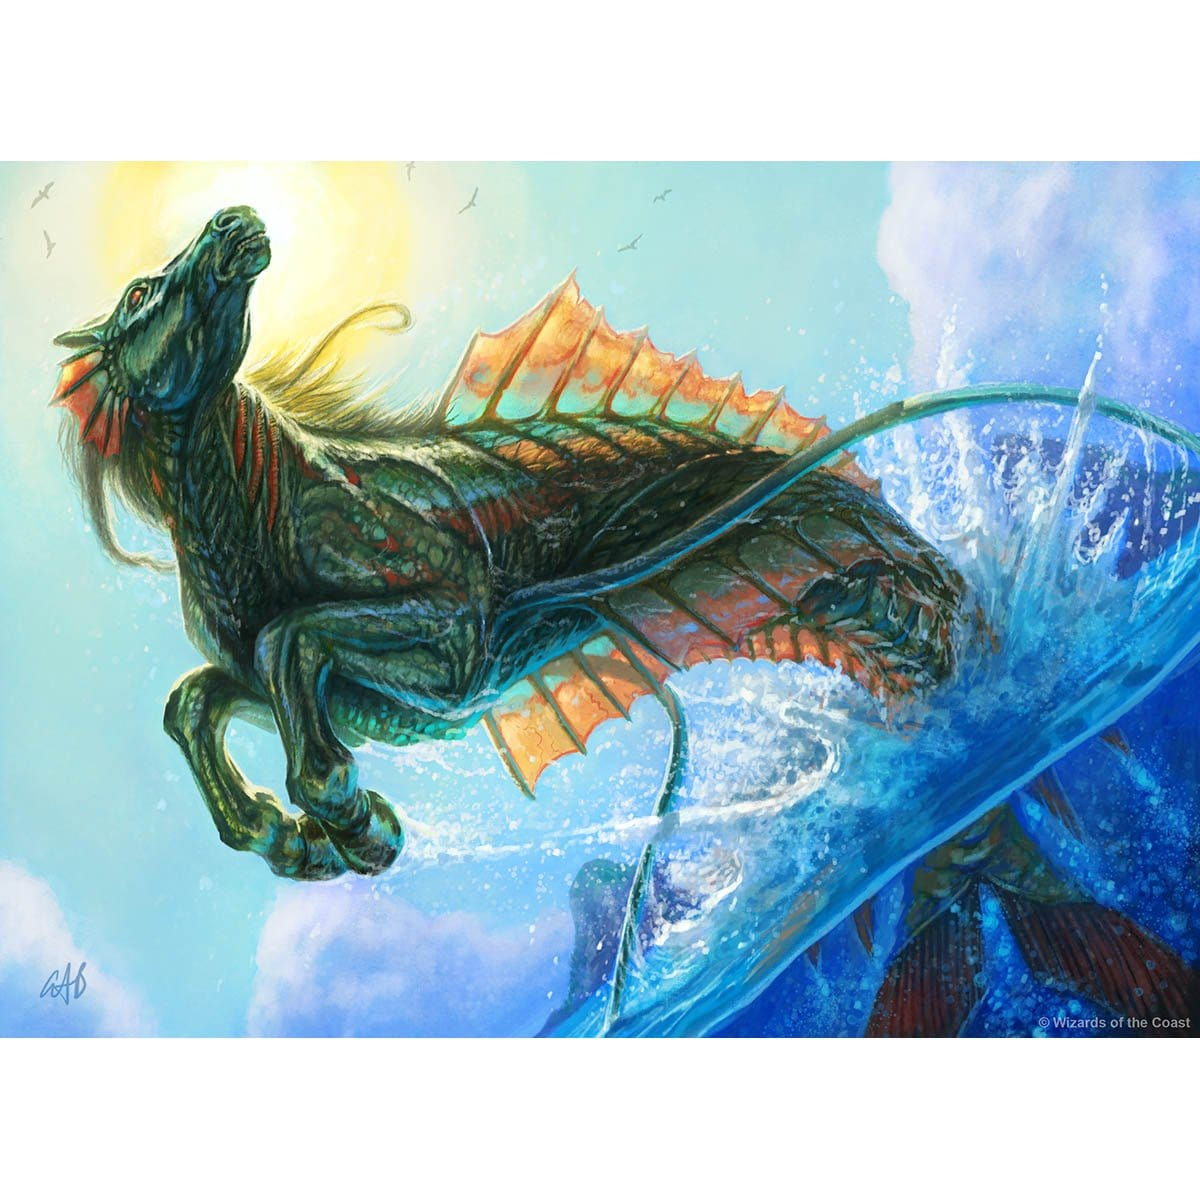 Breeching Hippocamp Print - Print - Original Magic Art - Accessories for Magic the Gathering and other card games